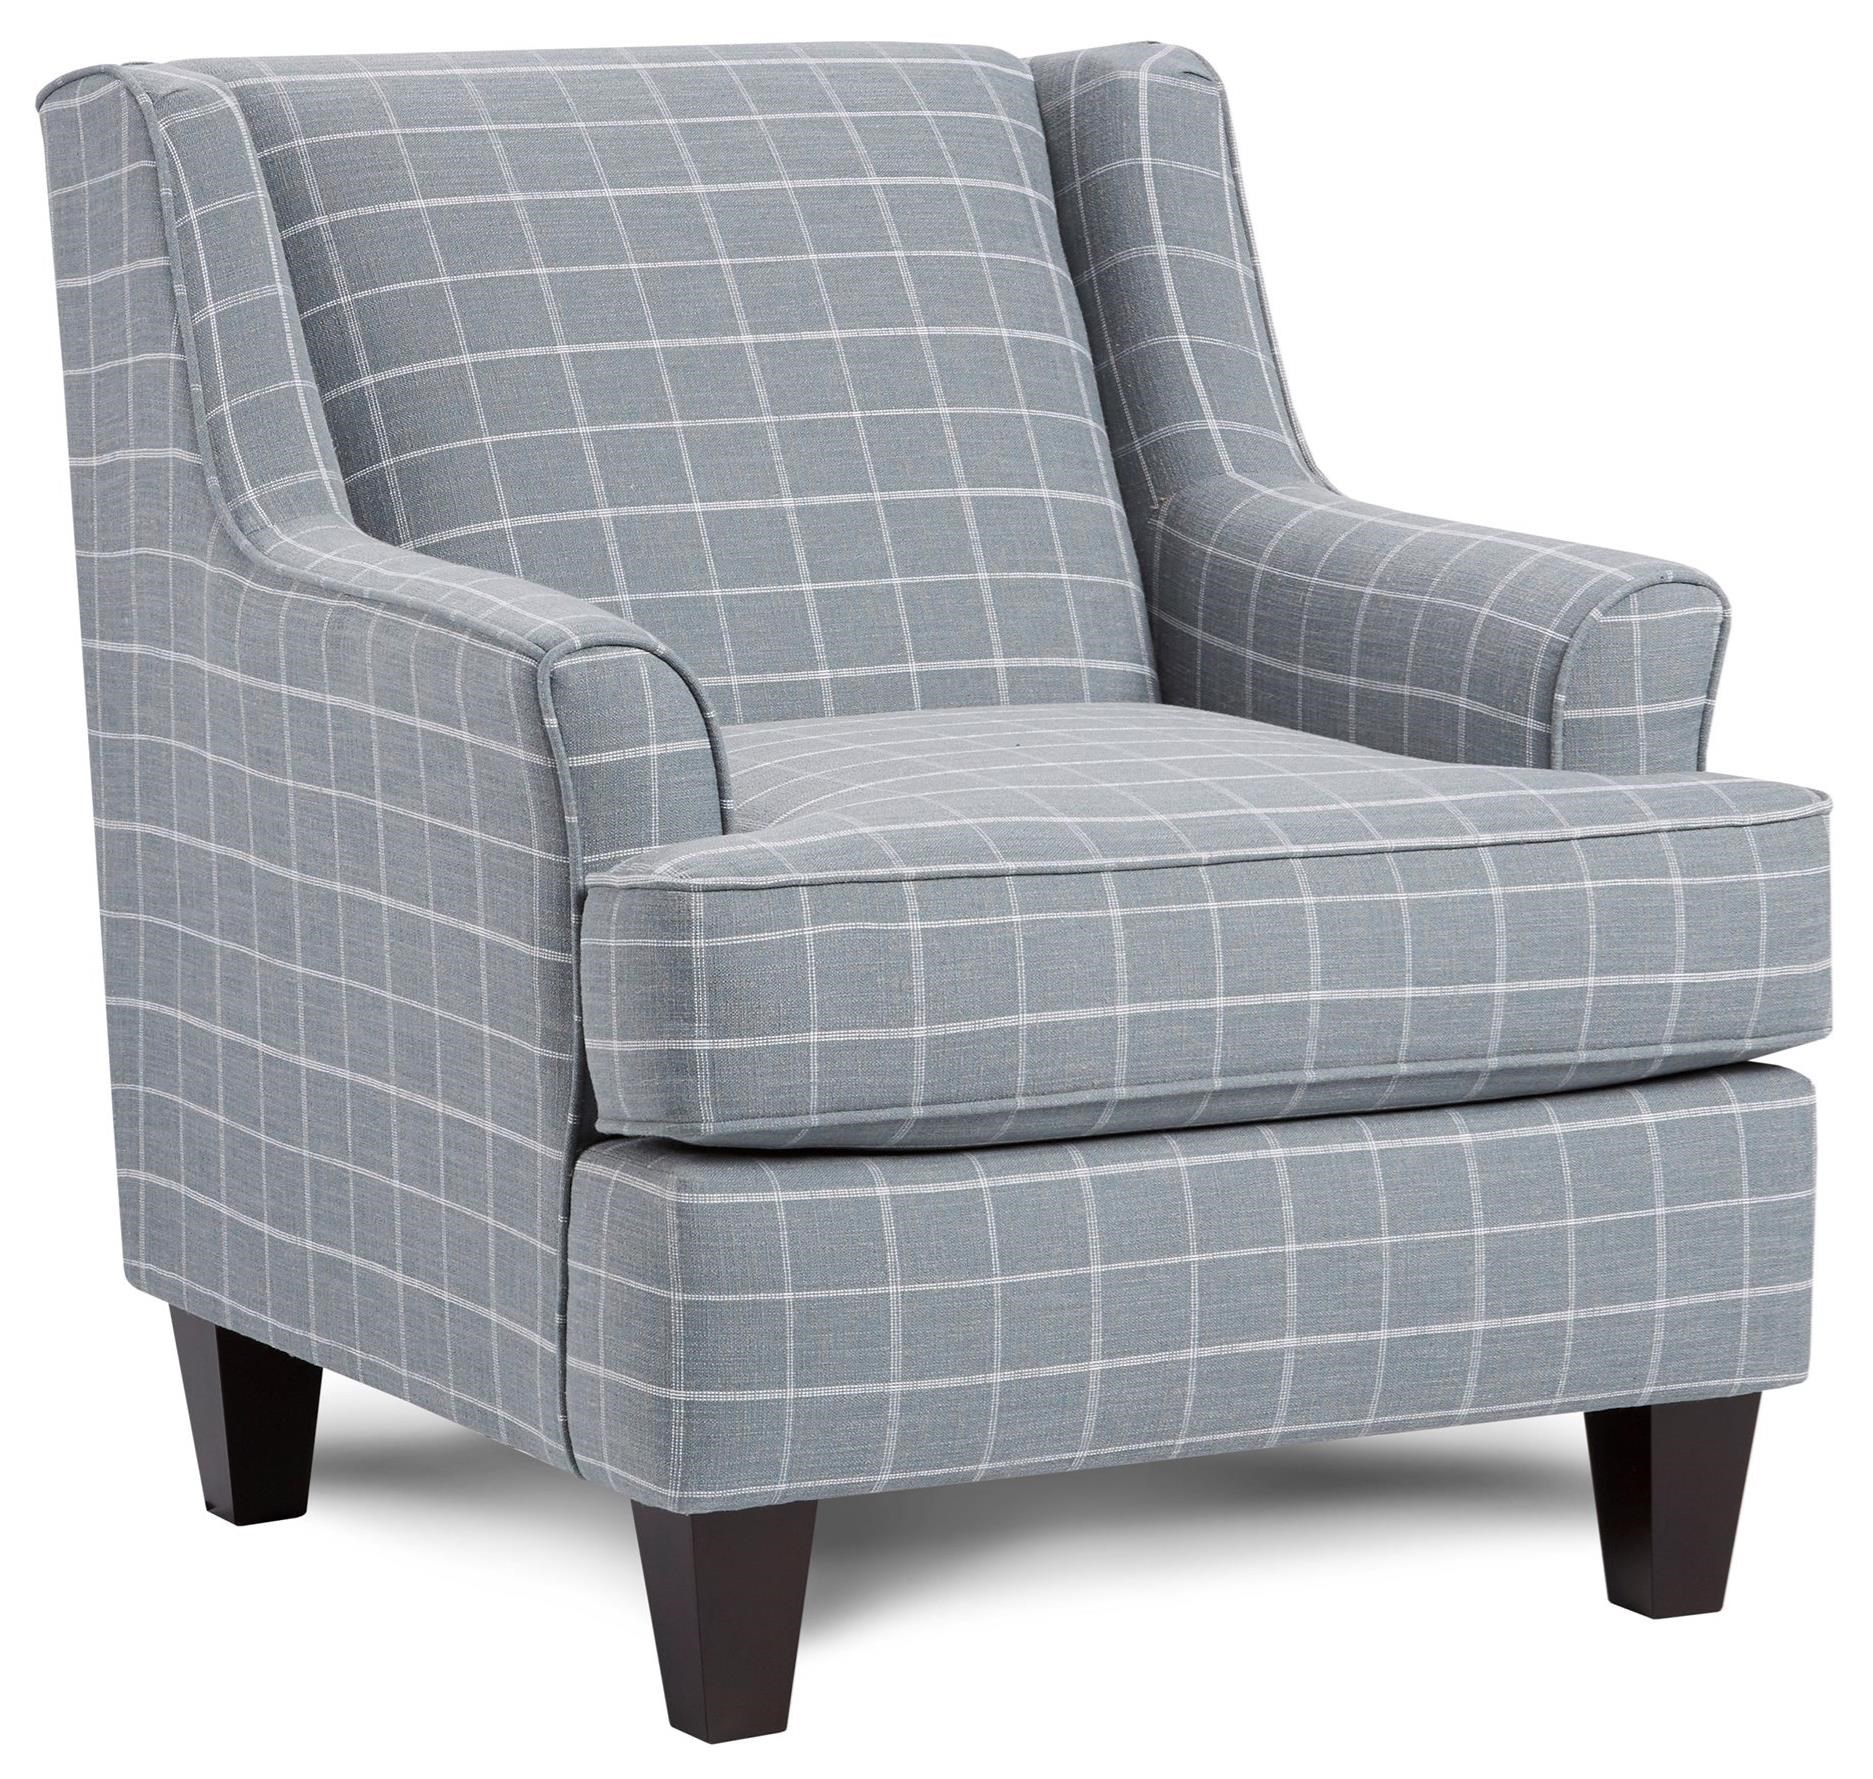 340 Upholstered Chair by VFM Signature at Virginia Furniture Market